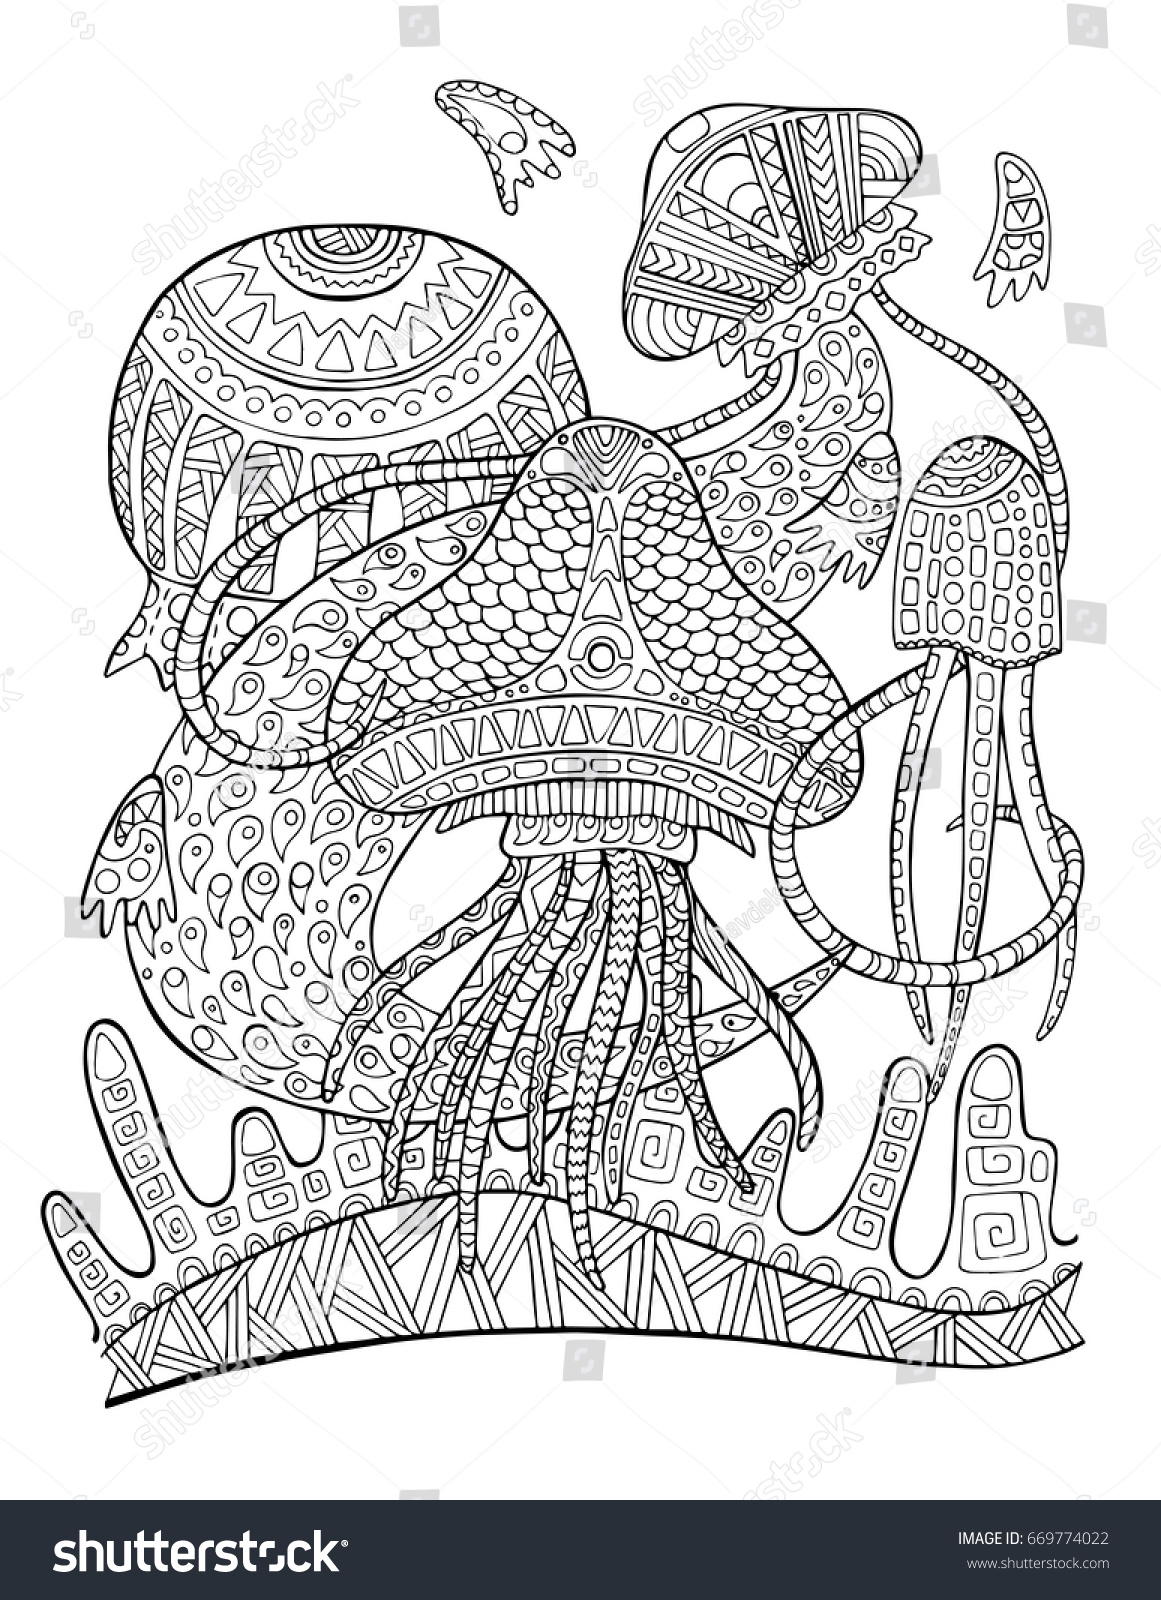 Jellyfish Animal Coloring Pages. Jellyfish underwater coloring page  Tropical fish doodle vector illustration Exotic animal for Underwater Coloring Page Fish Stock Vector